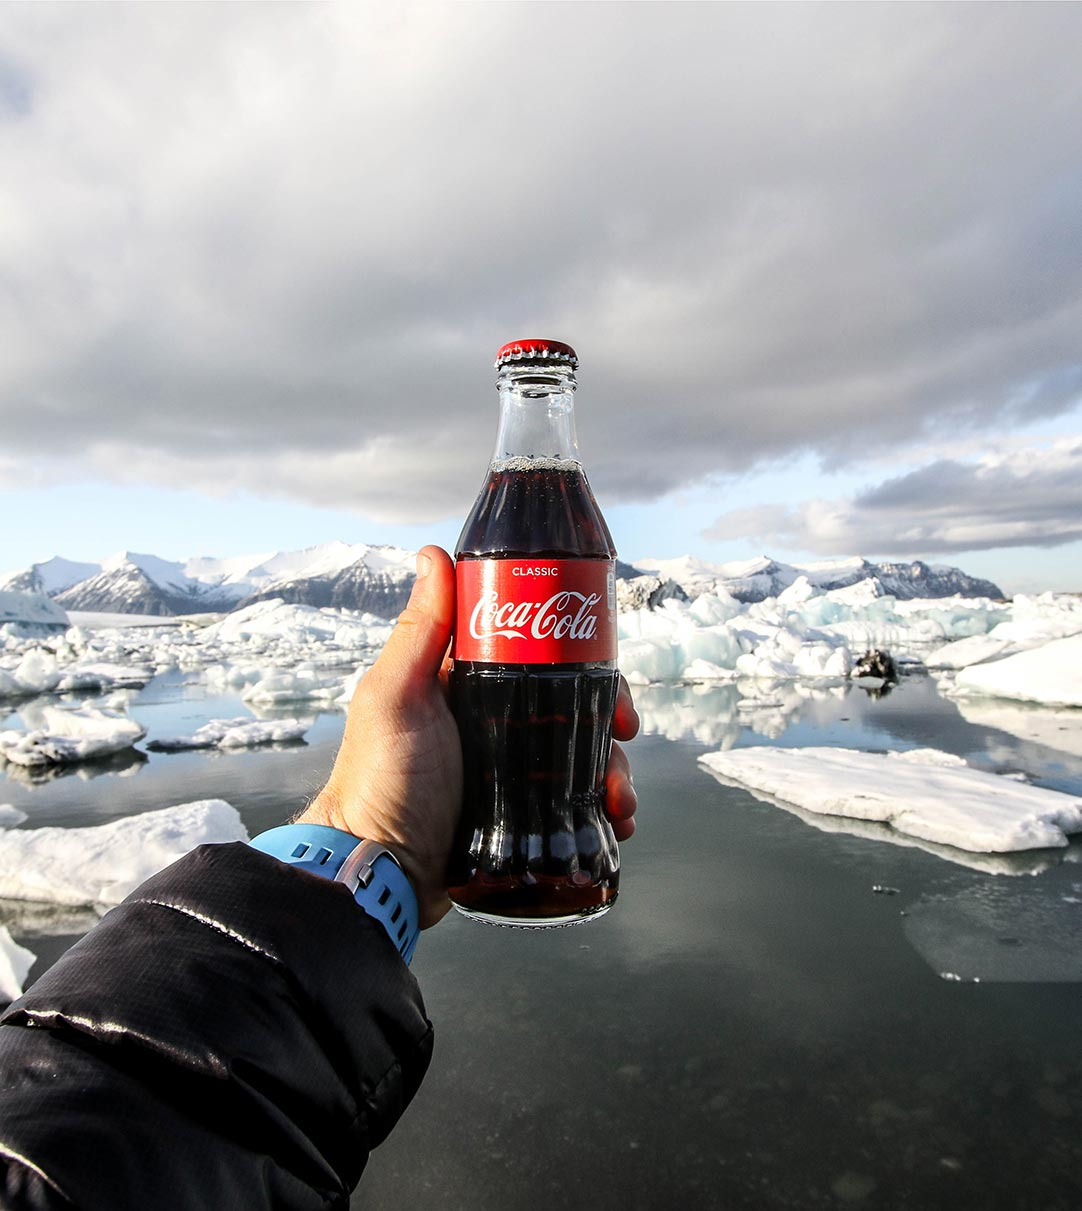 Coca-Cola bottle in front of a mountain range